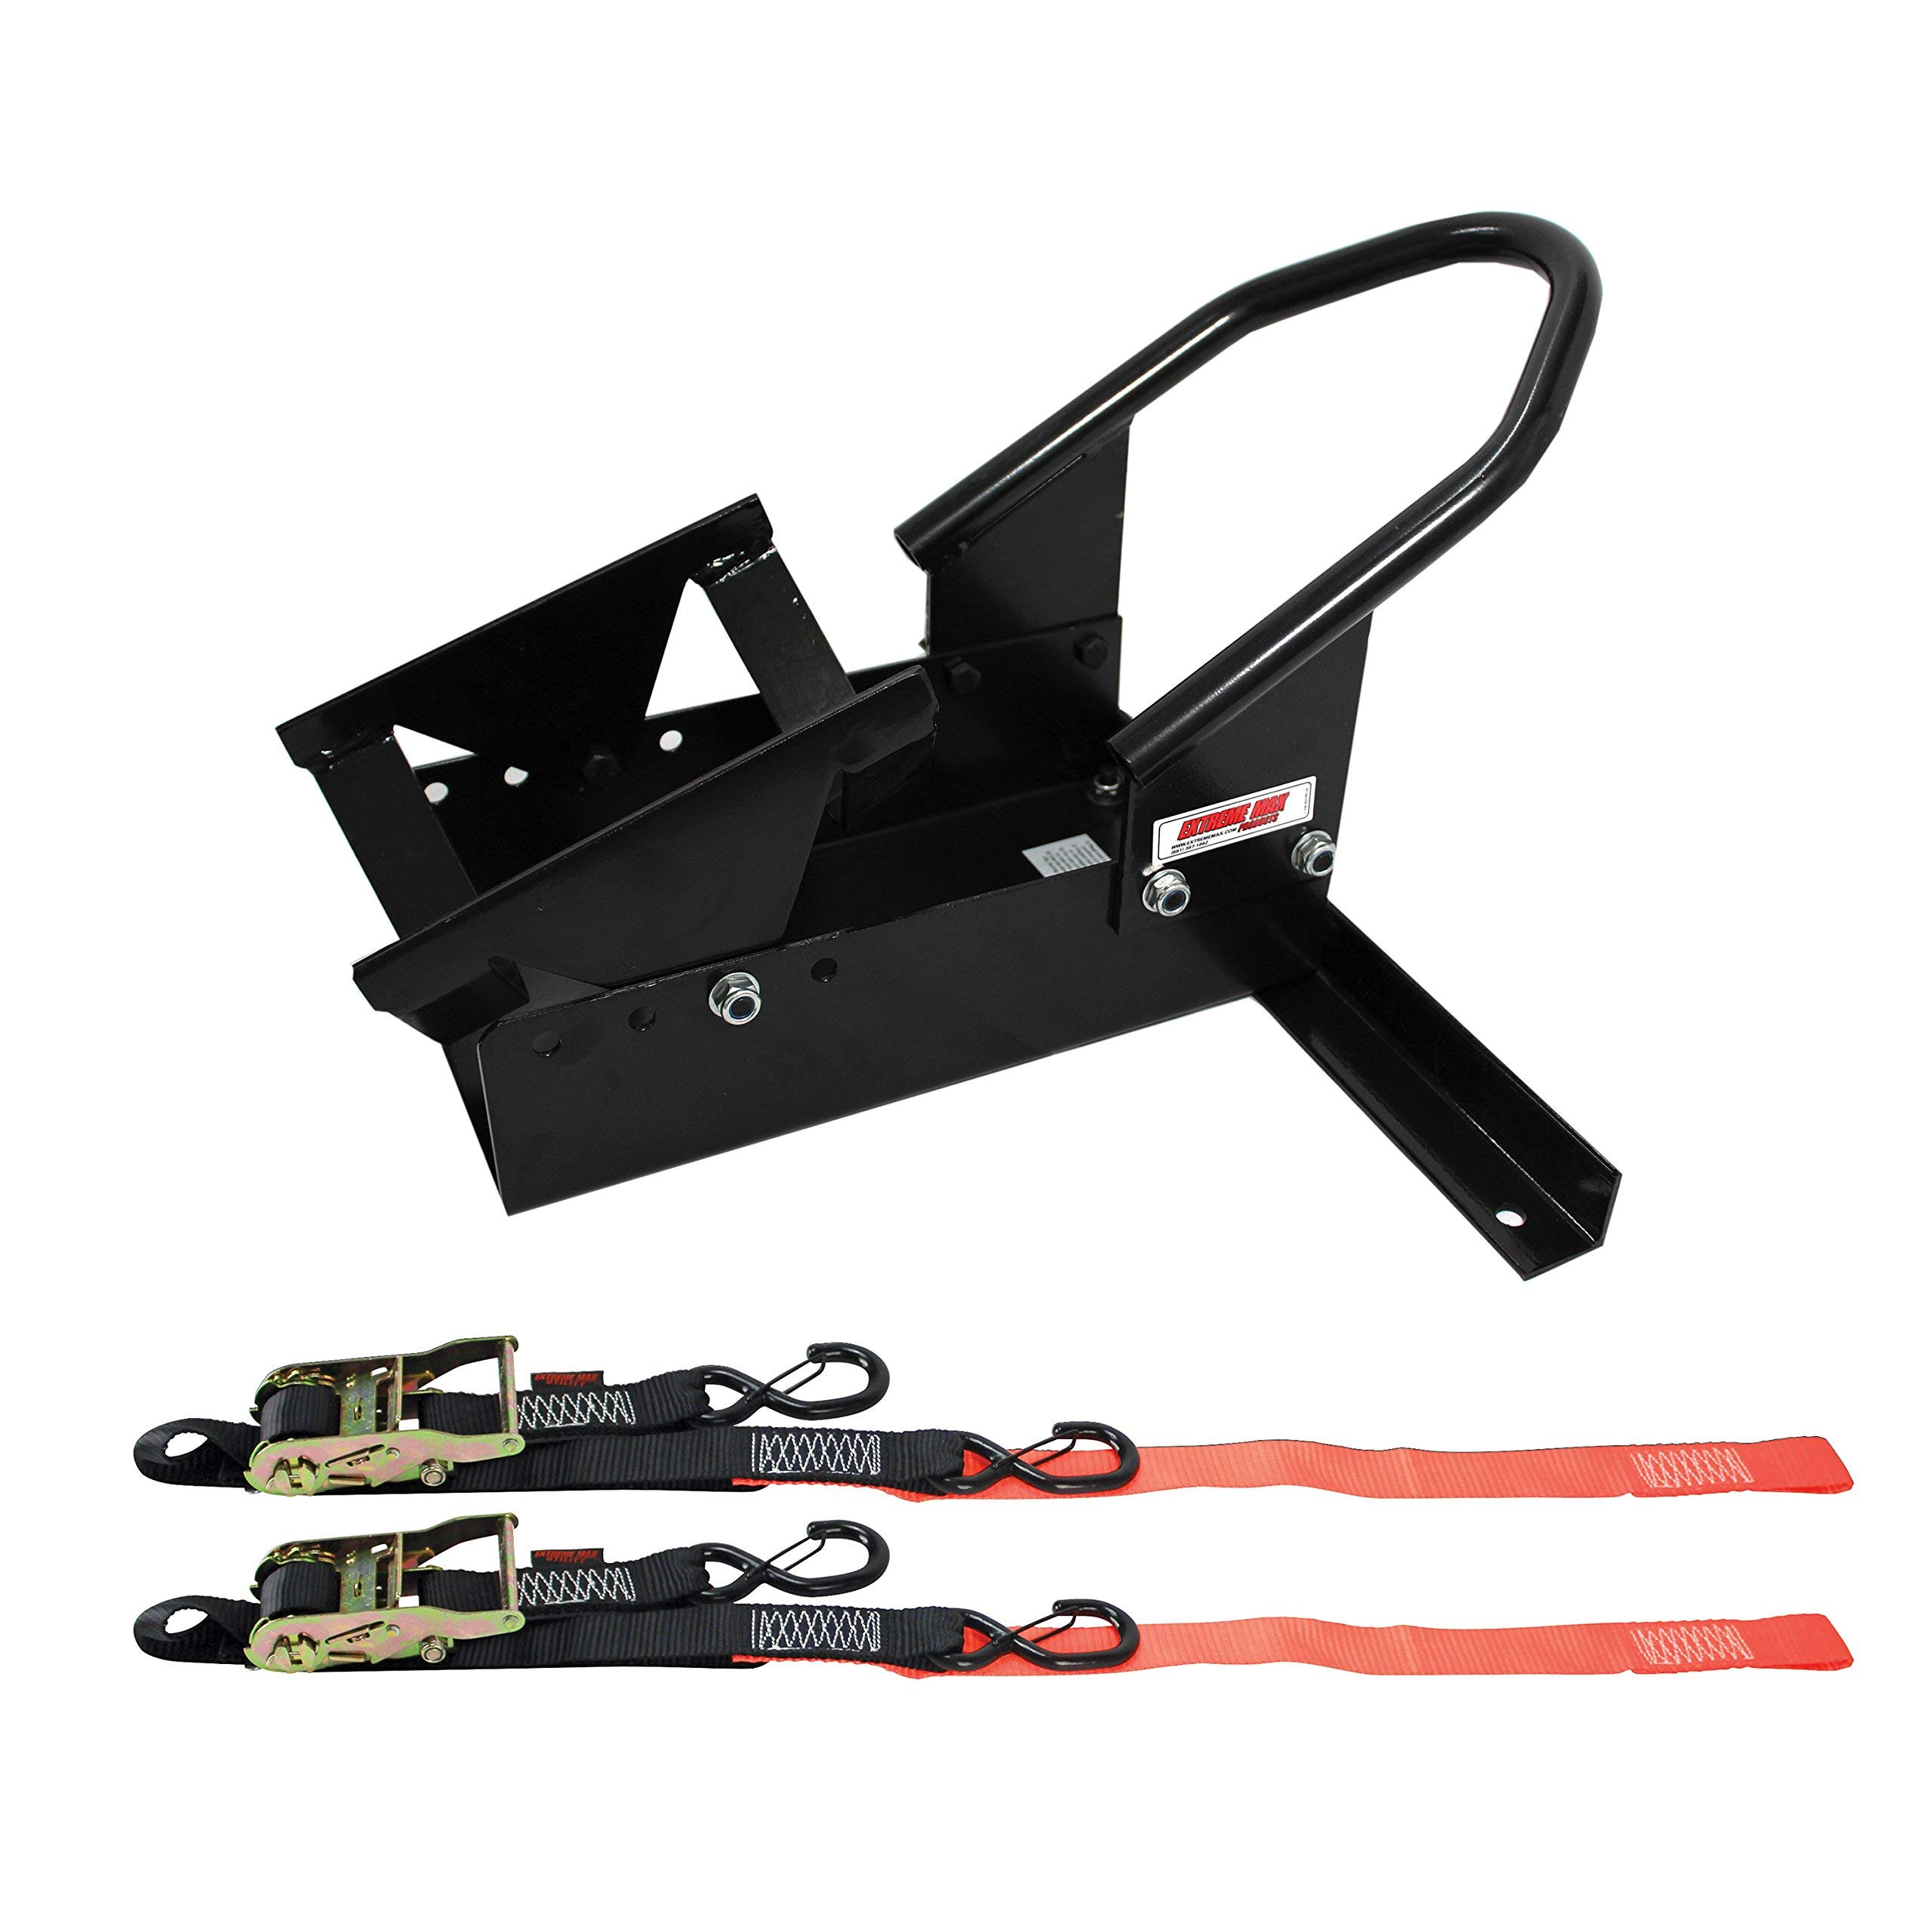 Extreme Max 5600.3204 Deluxe Motorcycle Wheel Chock / Tie-Down Kit (Renewed) by Extreme Max